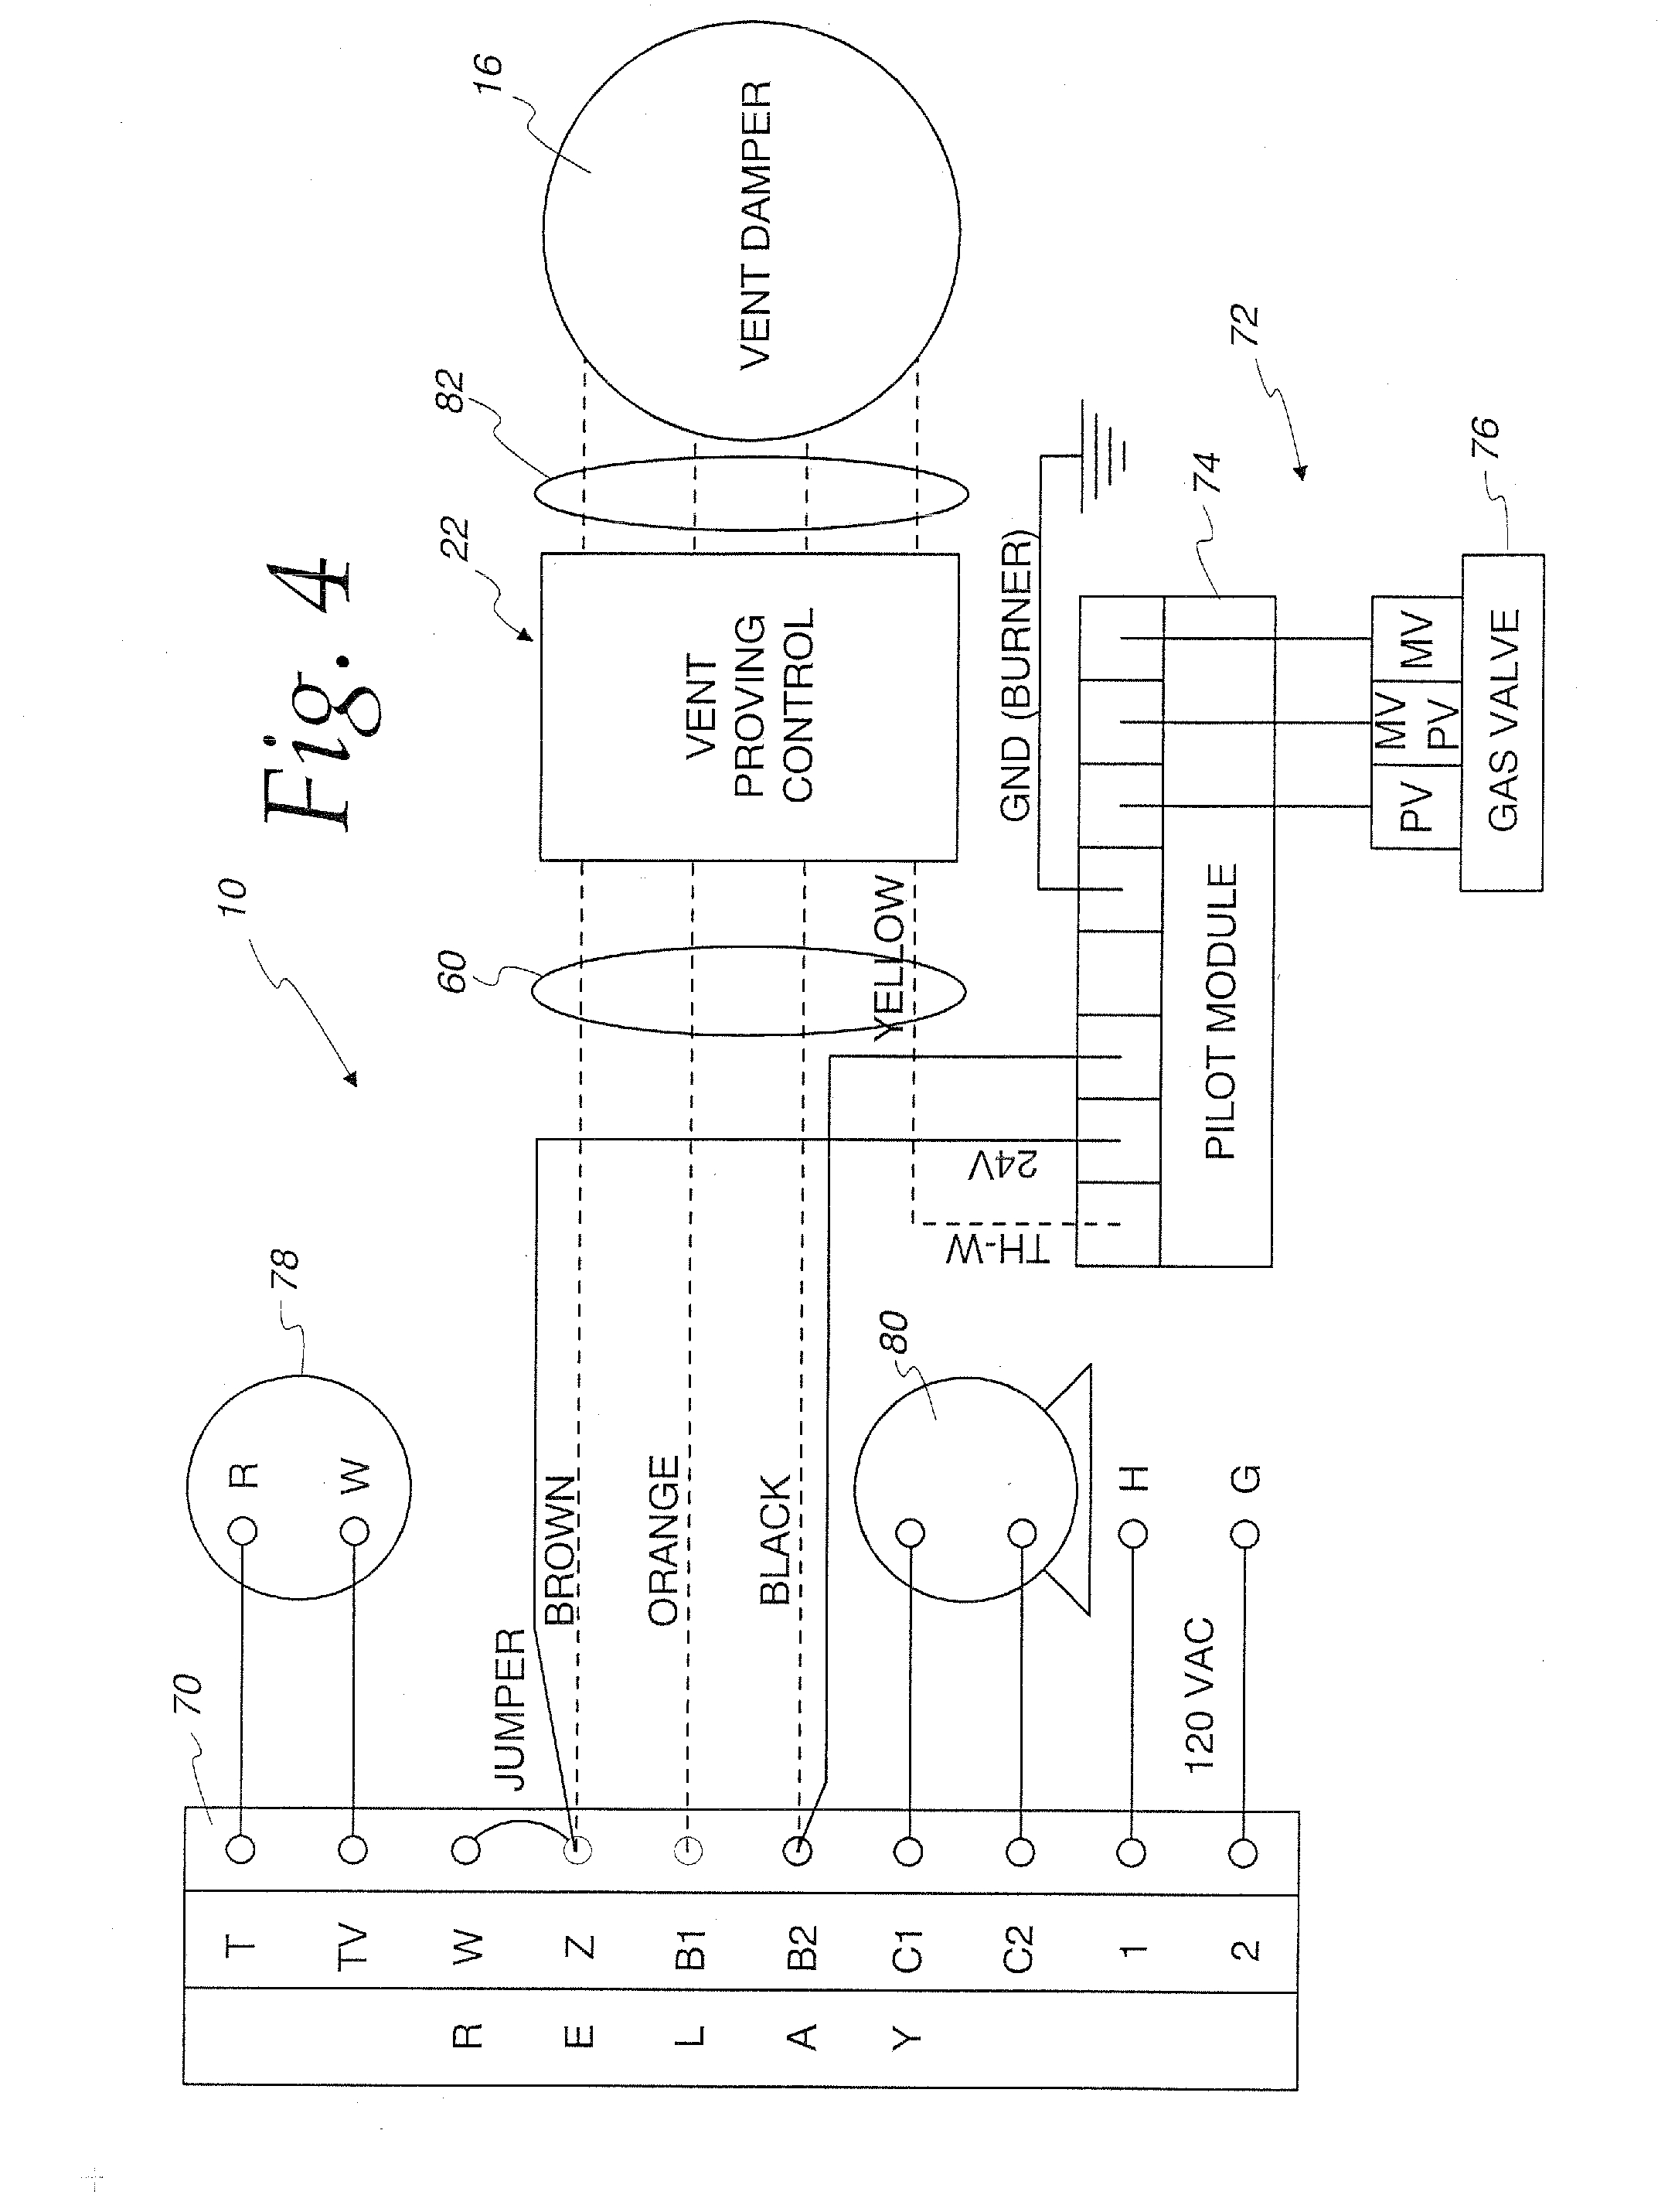 wiring diagram for power venter wiring diagrams search Single Line Wiring Diagram